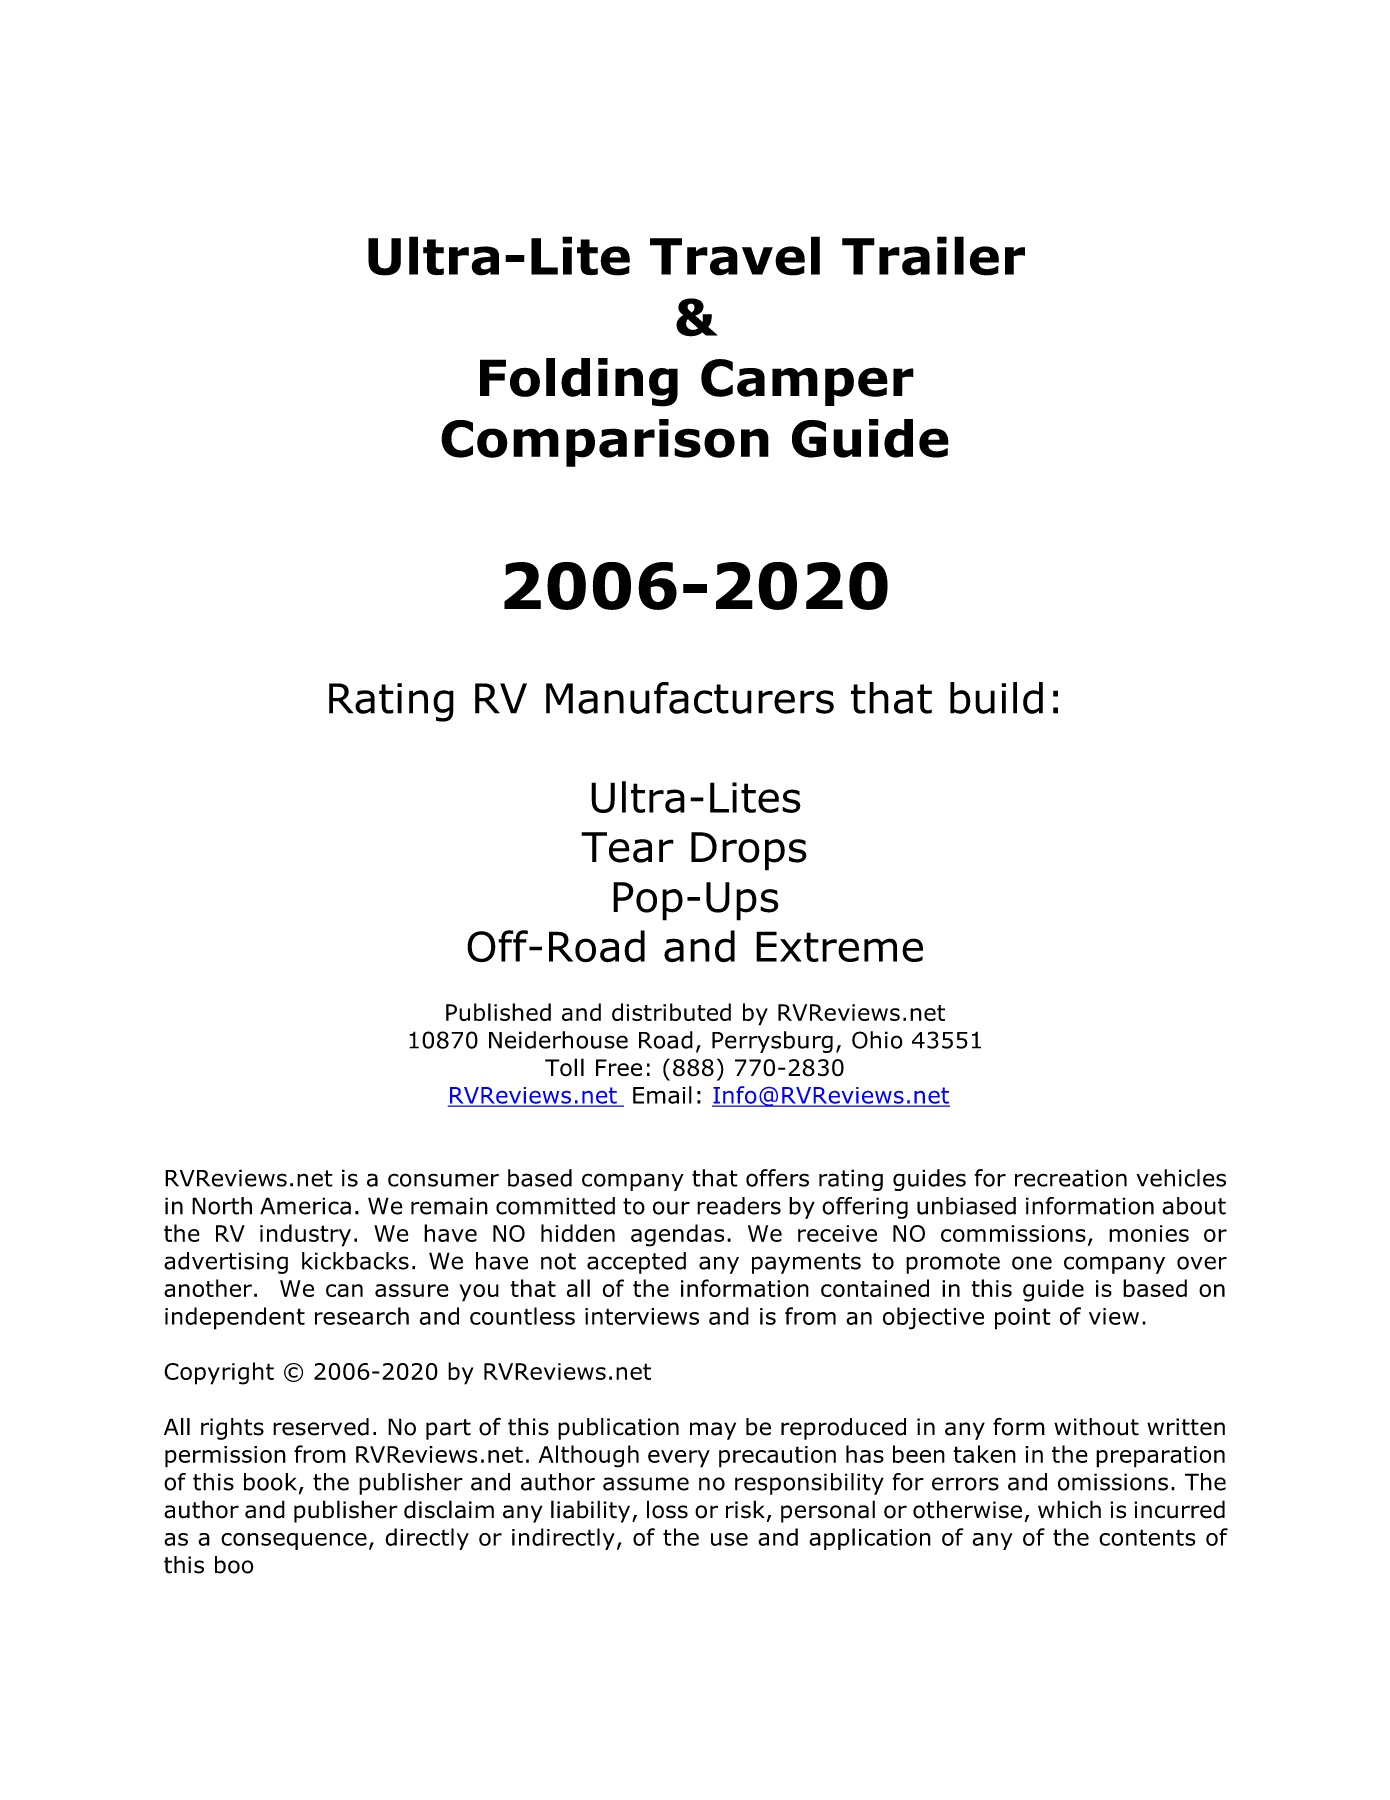 2018 Lightweight Travel Trailer Comparison Guide Pages 1   50   Text  Version | AnyFlip